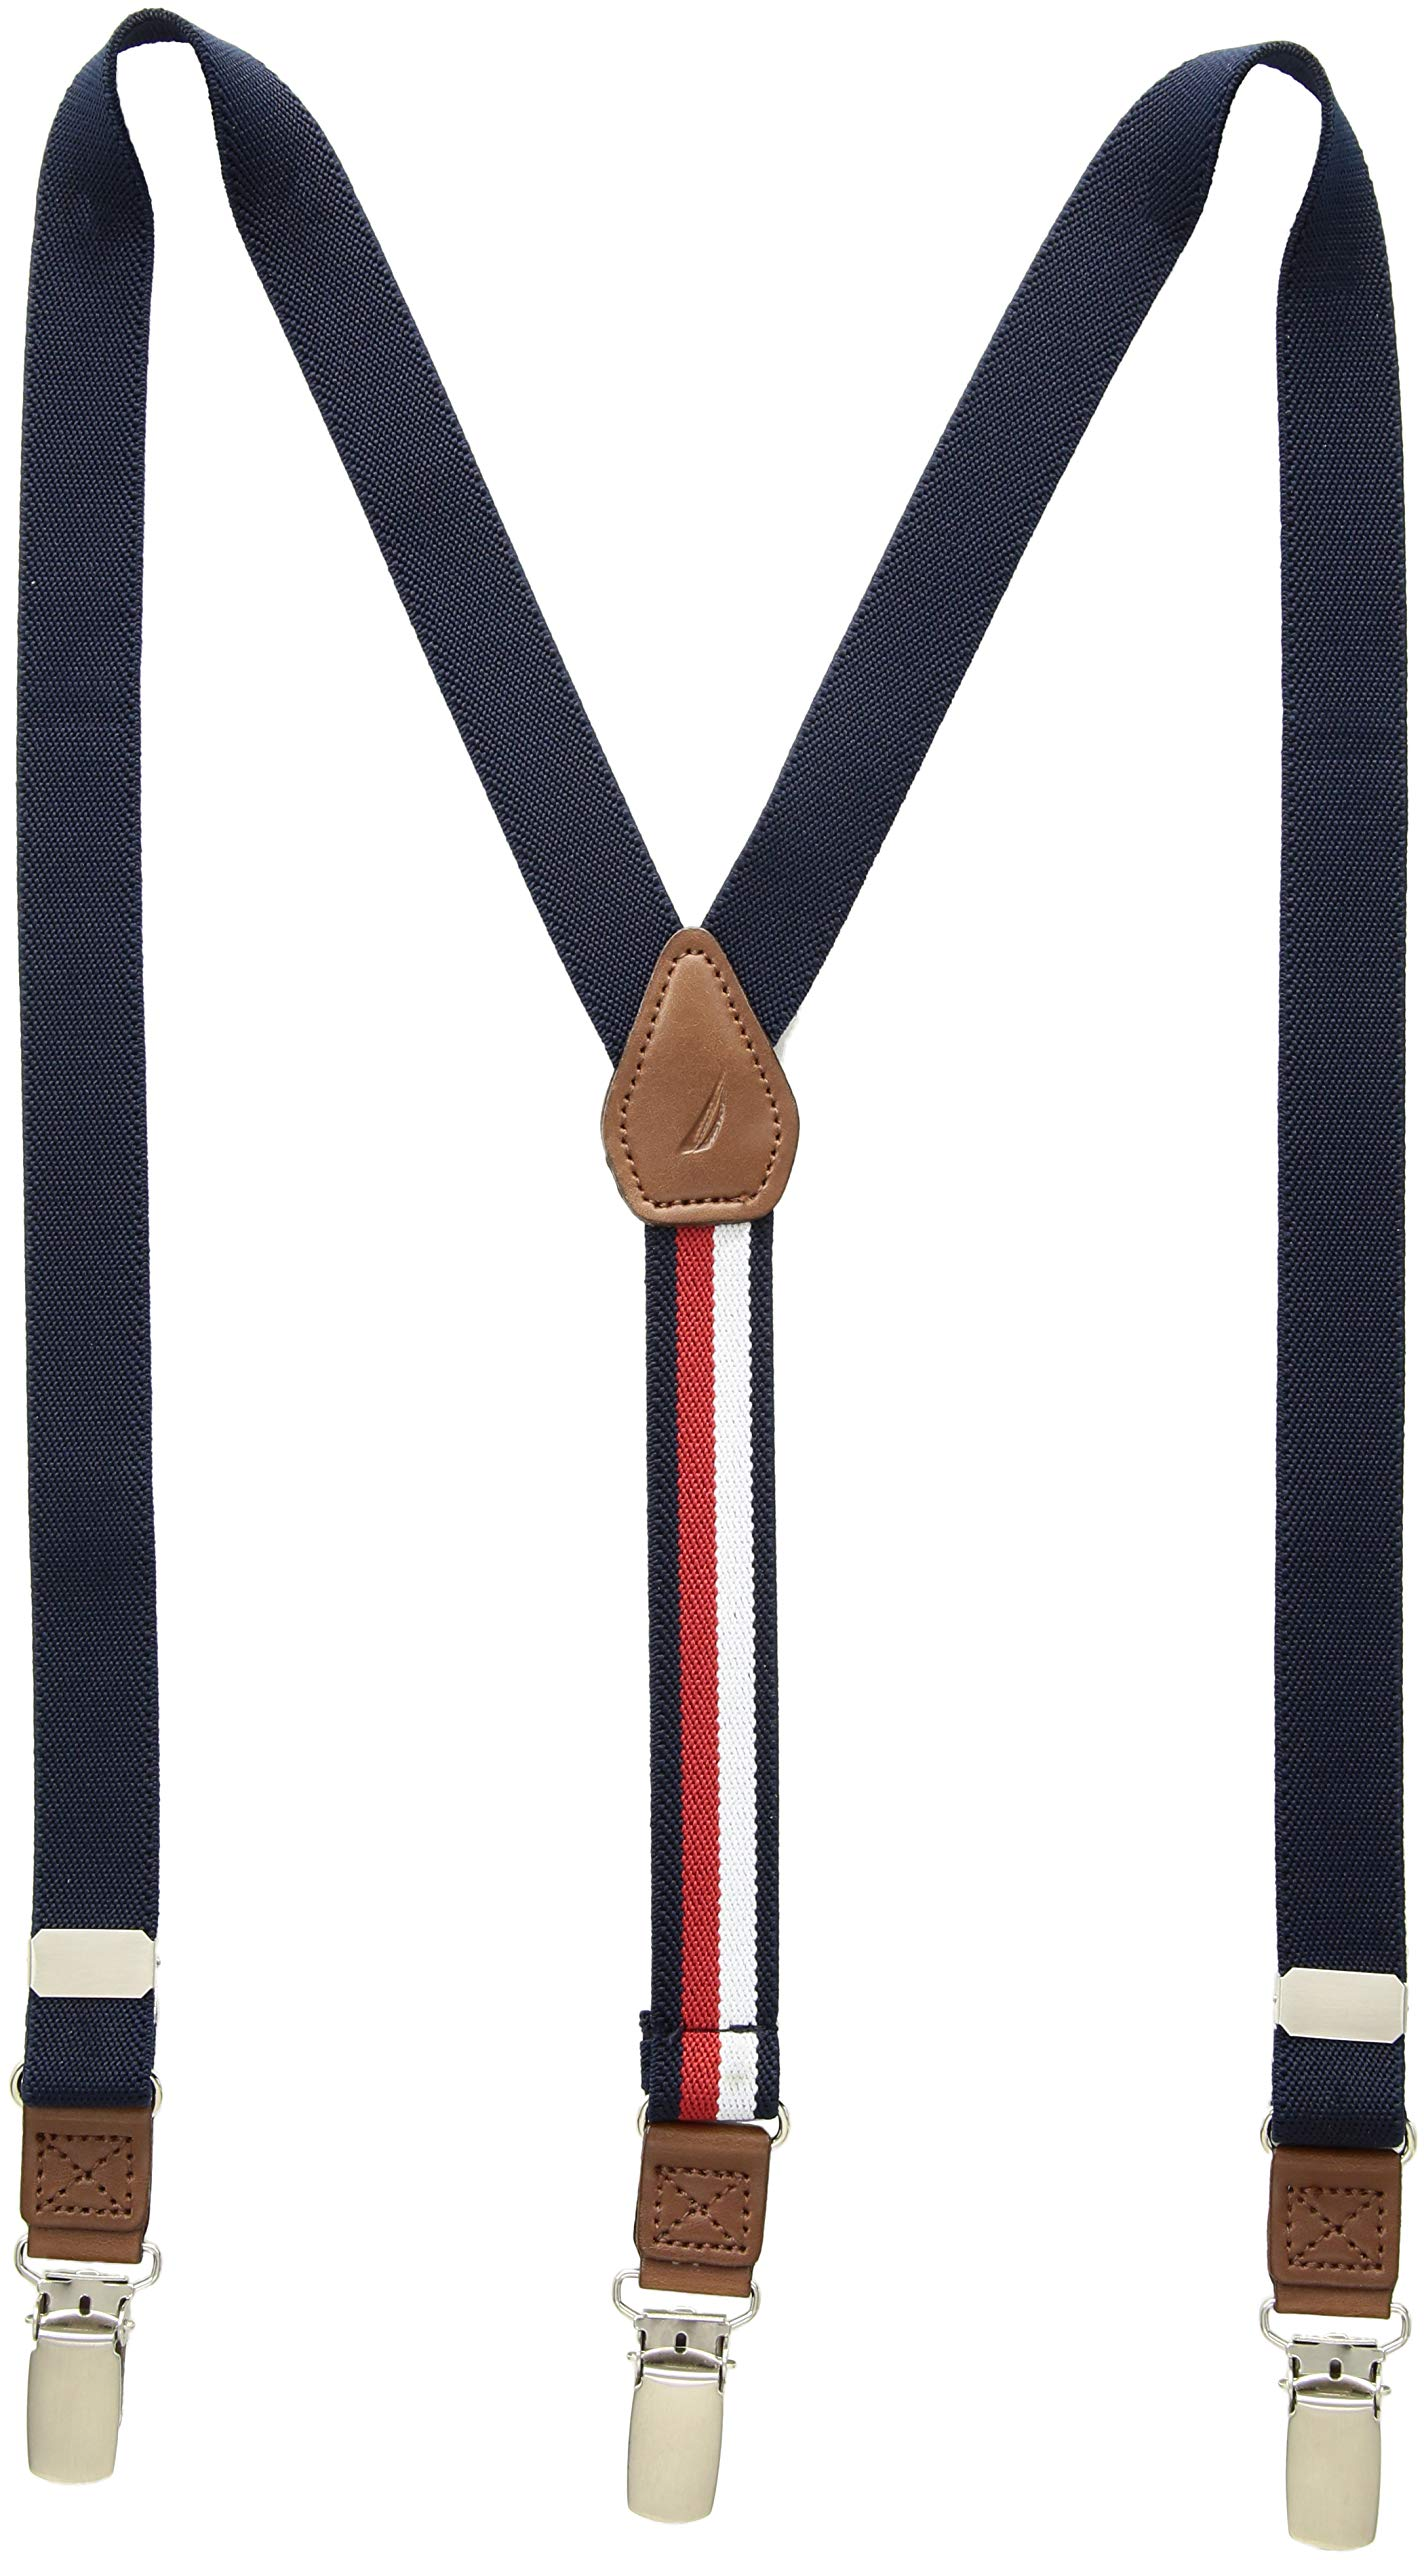 Tommy Hilfiger Boys' Big Adjustable Clip Suspender, navy, One Size